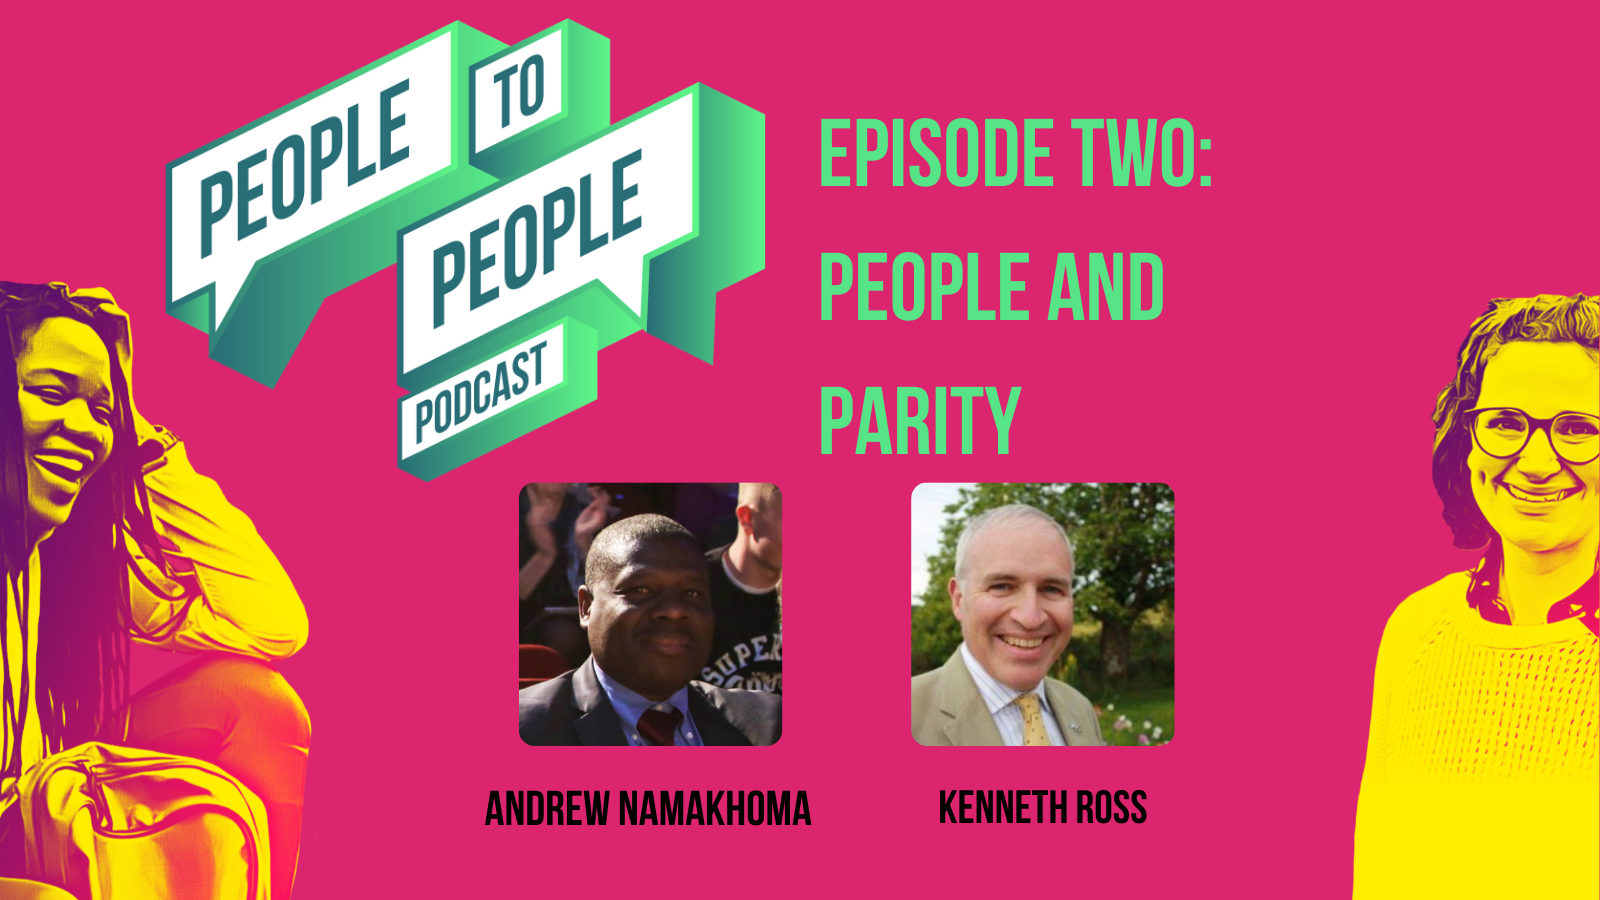 Episode Two Andrew Namakhoma and Kenneth Ross